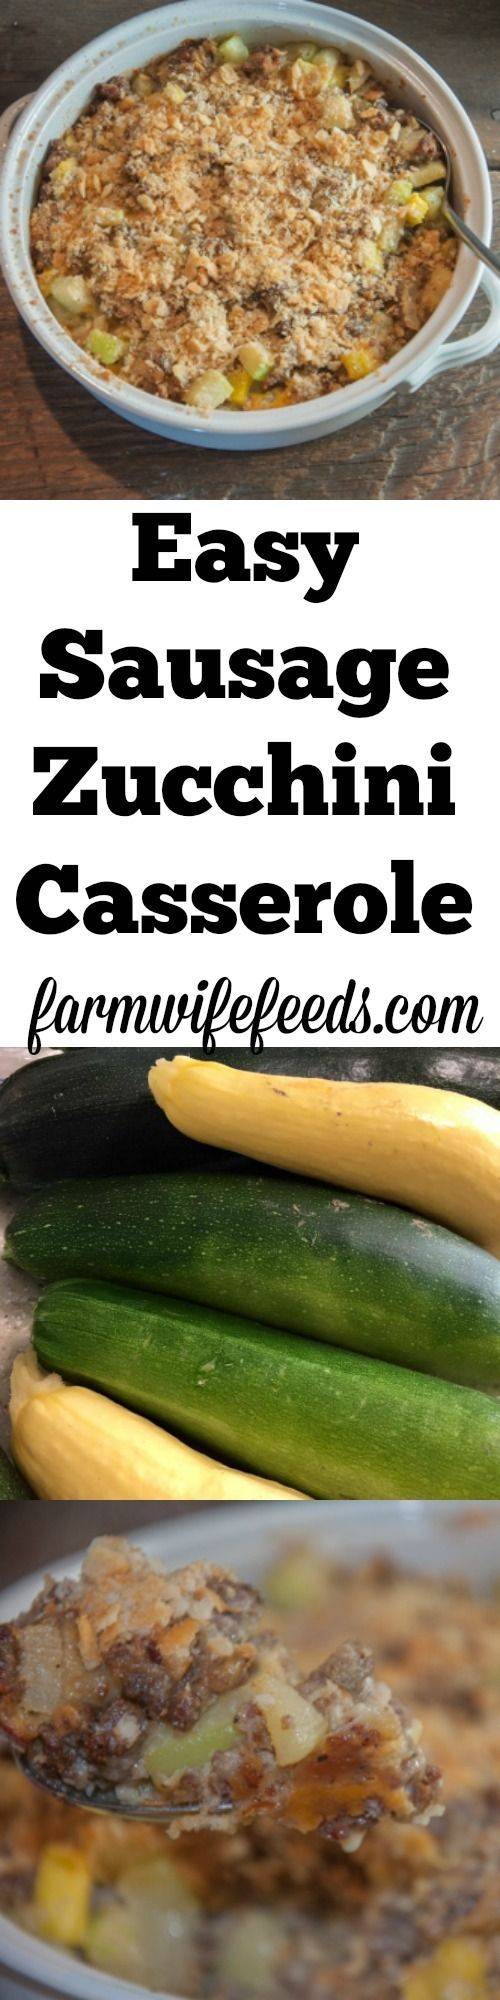 This Sausage Zucchini Casserole is the perfect recipe for the zucchini lover! An easy casserole that includes sausage and cheese!